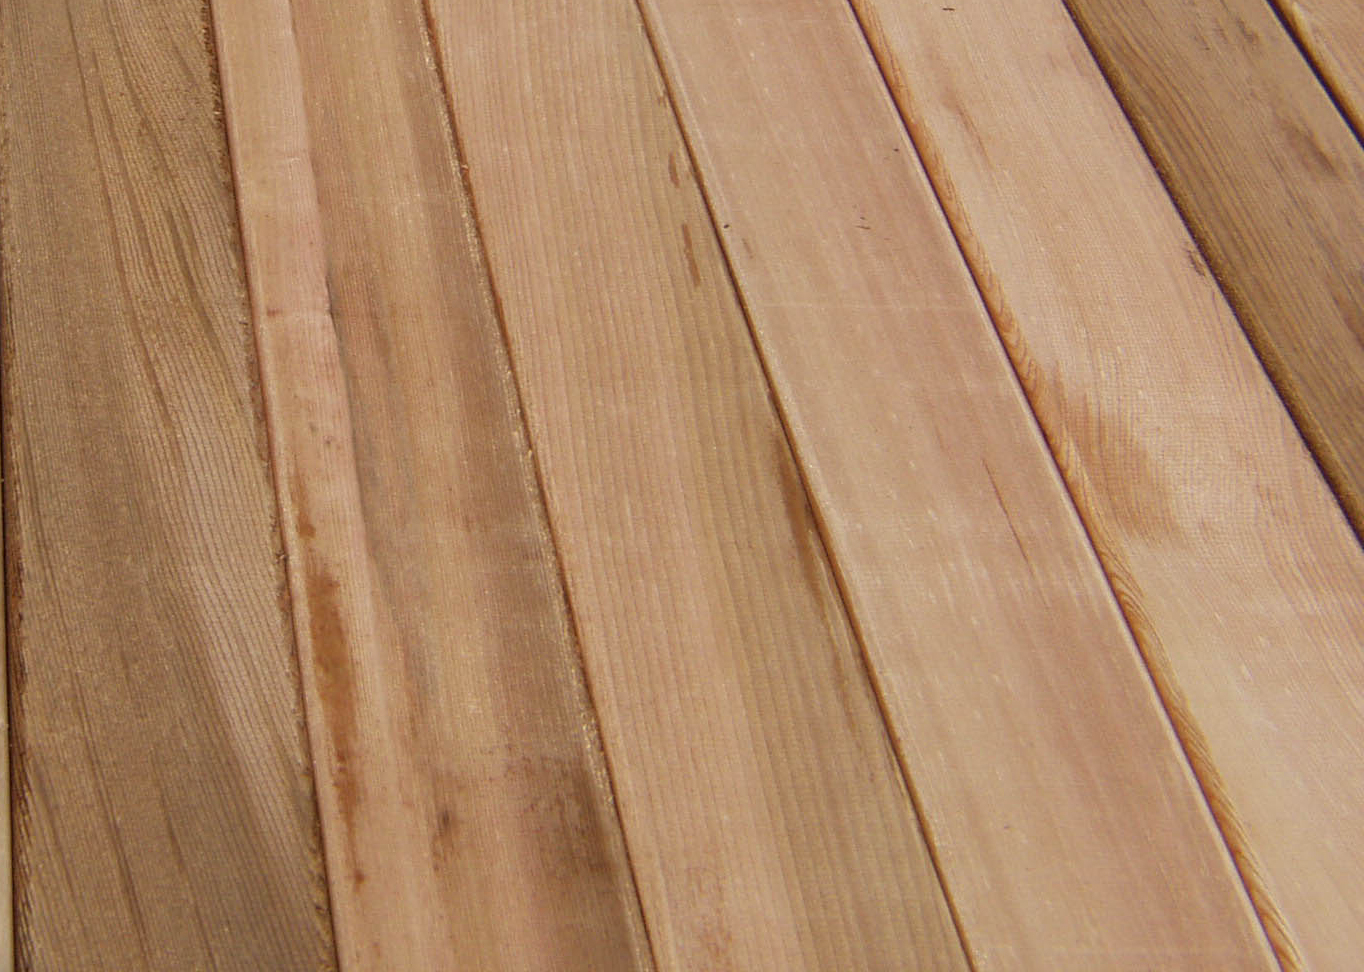 Bear Creek Lumber Western Red Cedar Boards Surfaced